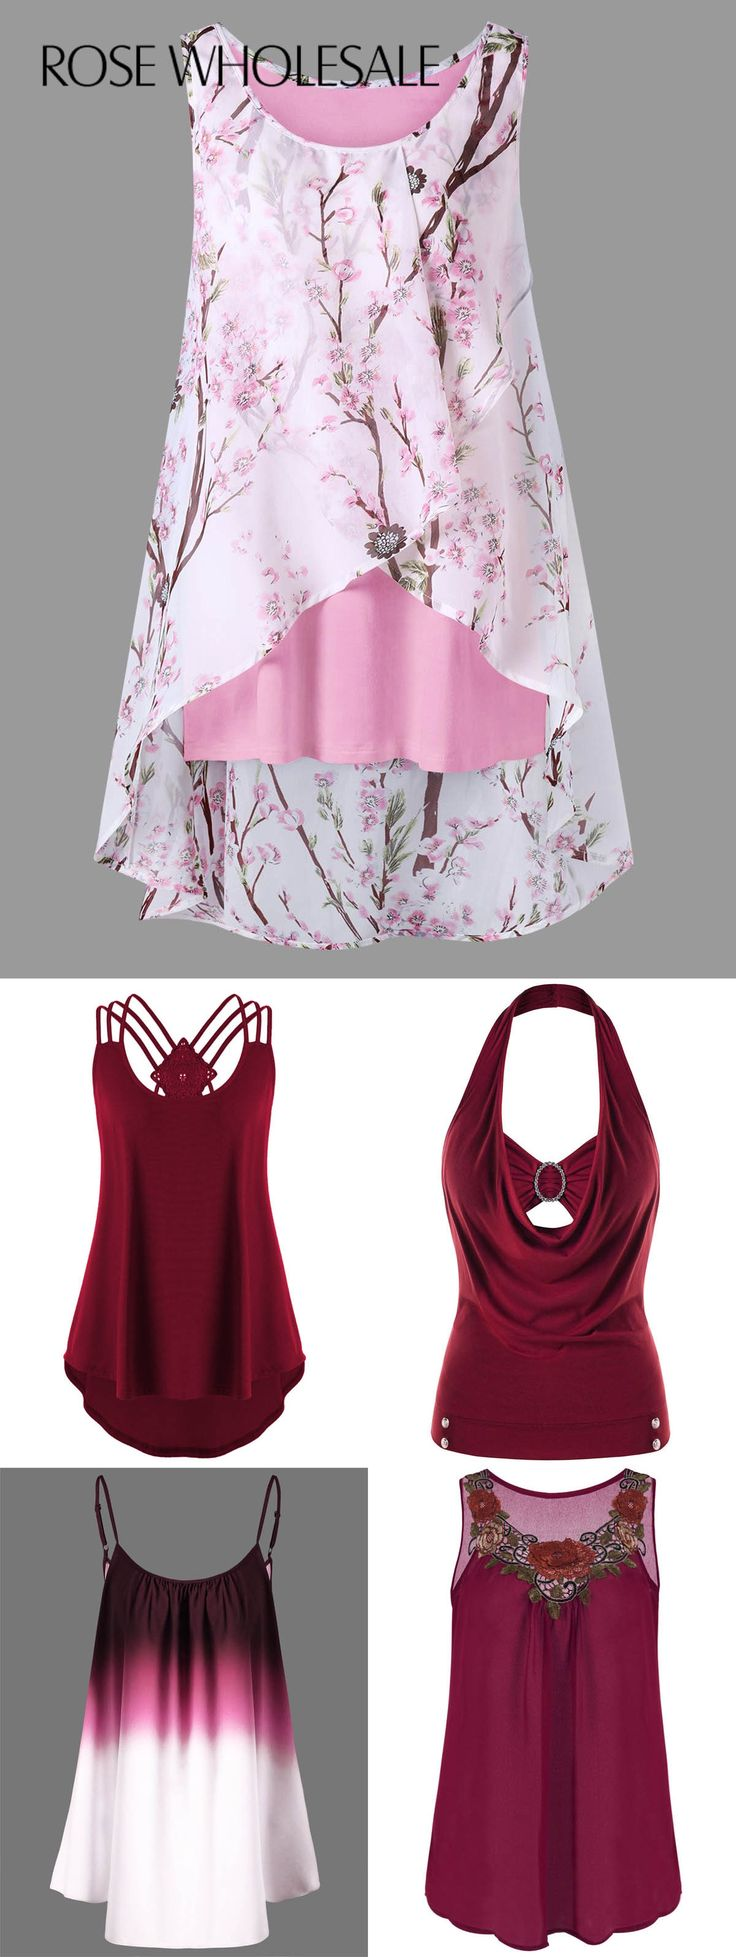 Up to 80%, rosewholesale tank tops for women | rosewholesale,rosewholesale.com,rosewholesale clothes,rosewholesale.com clothing,rosewholesale tops,spring outfit,floral,tank tops | #rosewholesale #tanktops #tops